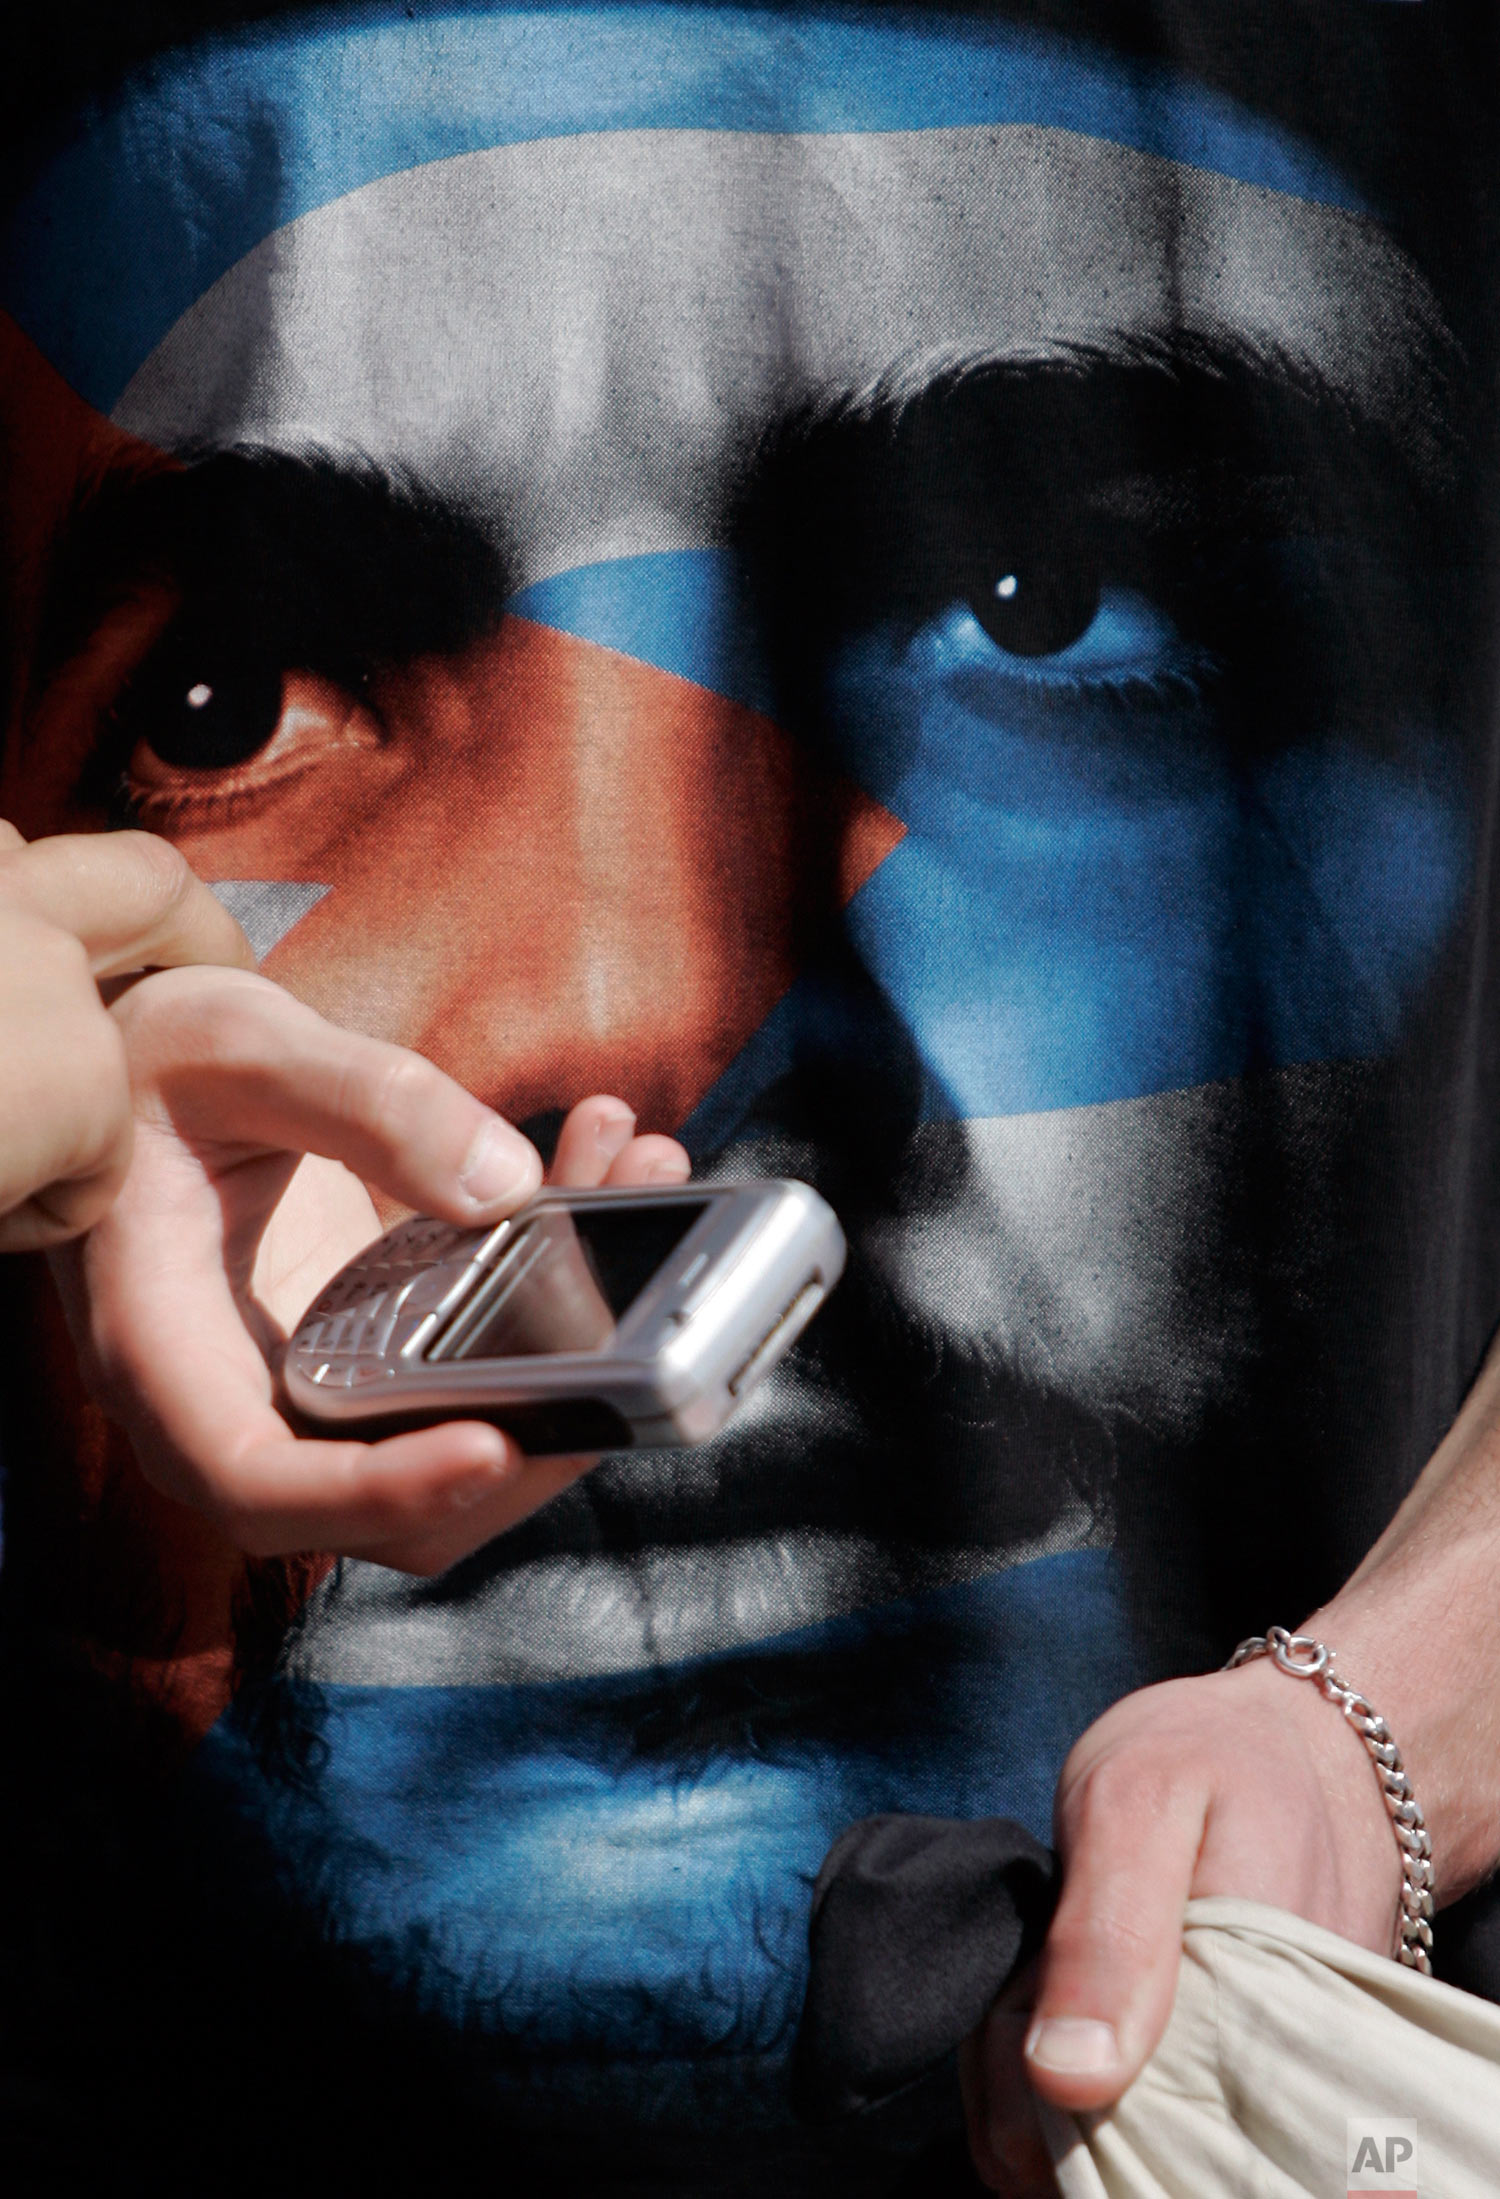 A young man wearing a T-shirt with an image of Cuban revolution leader Ernesto Che Guevara, shows a cellular phone to a friend during a Workers' Day march Thursday, May 1 2008, in Lisbon. (AP Photo/Armando Franca)